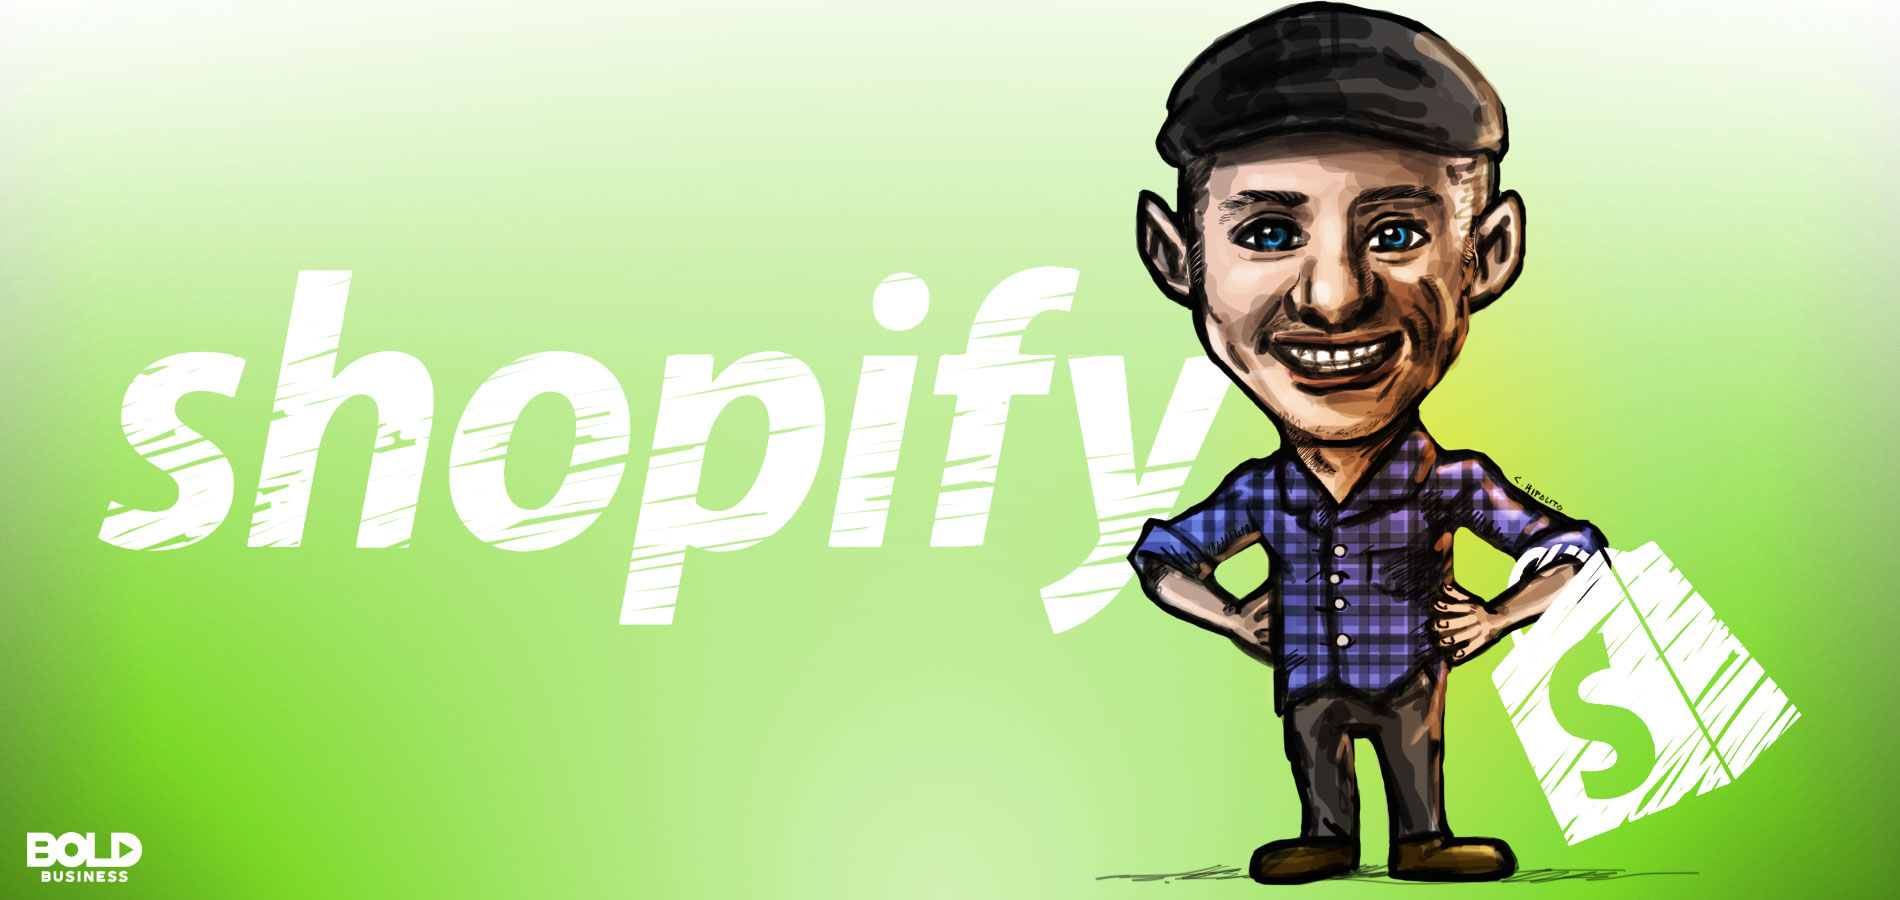 cartoon of tobias lutke, founder and ceo of shopify